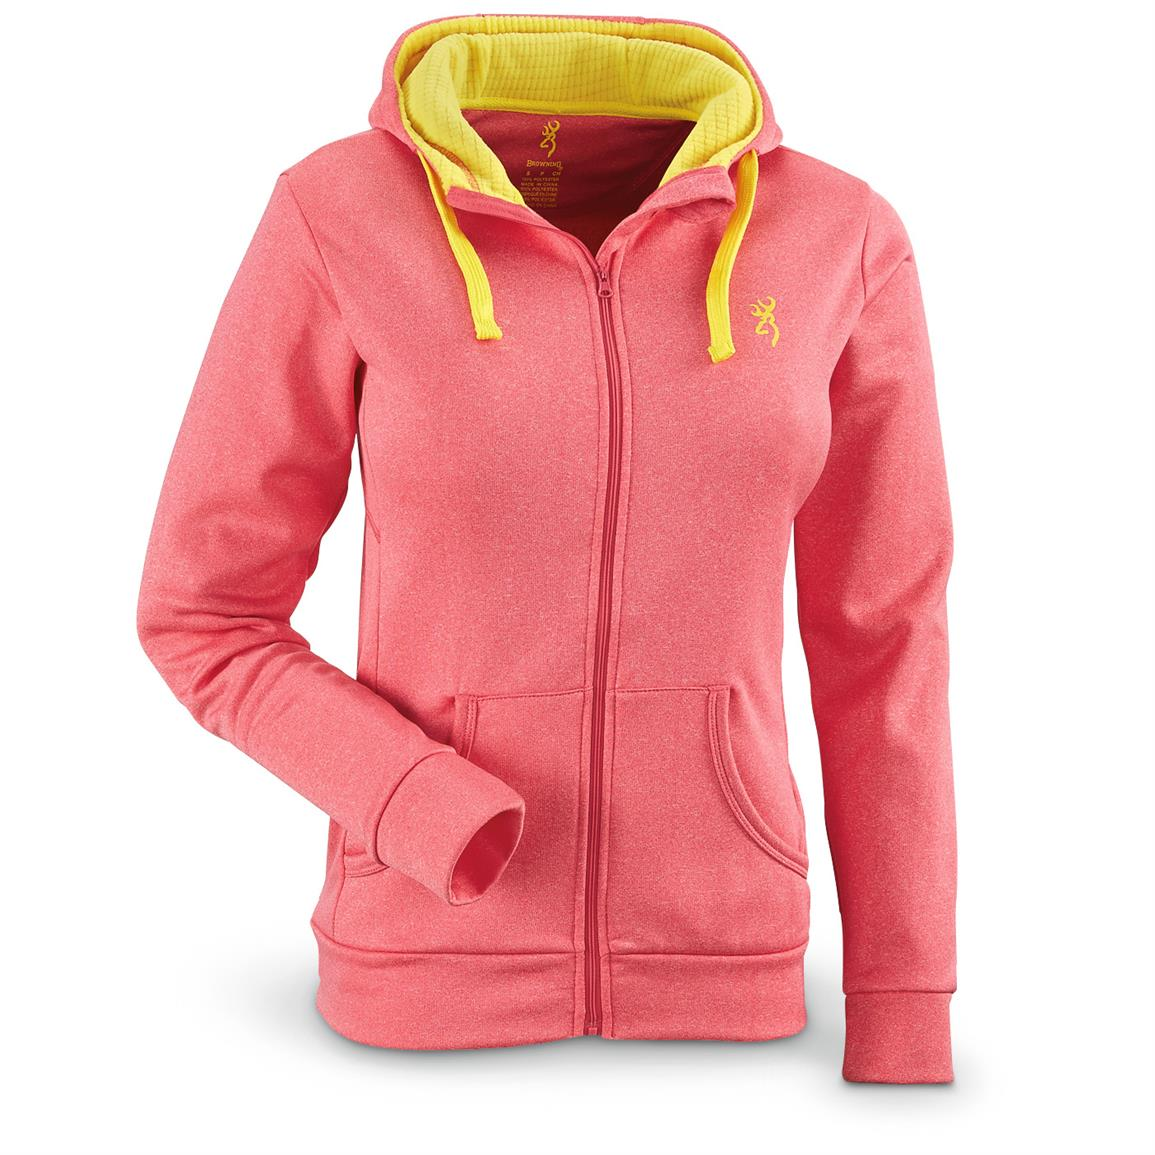 Browning Women's Performance Full-Zip Hoodie, Fuchsia